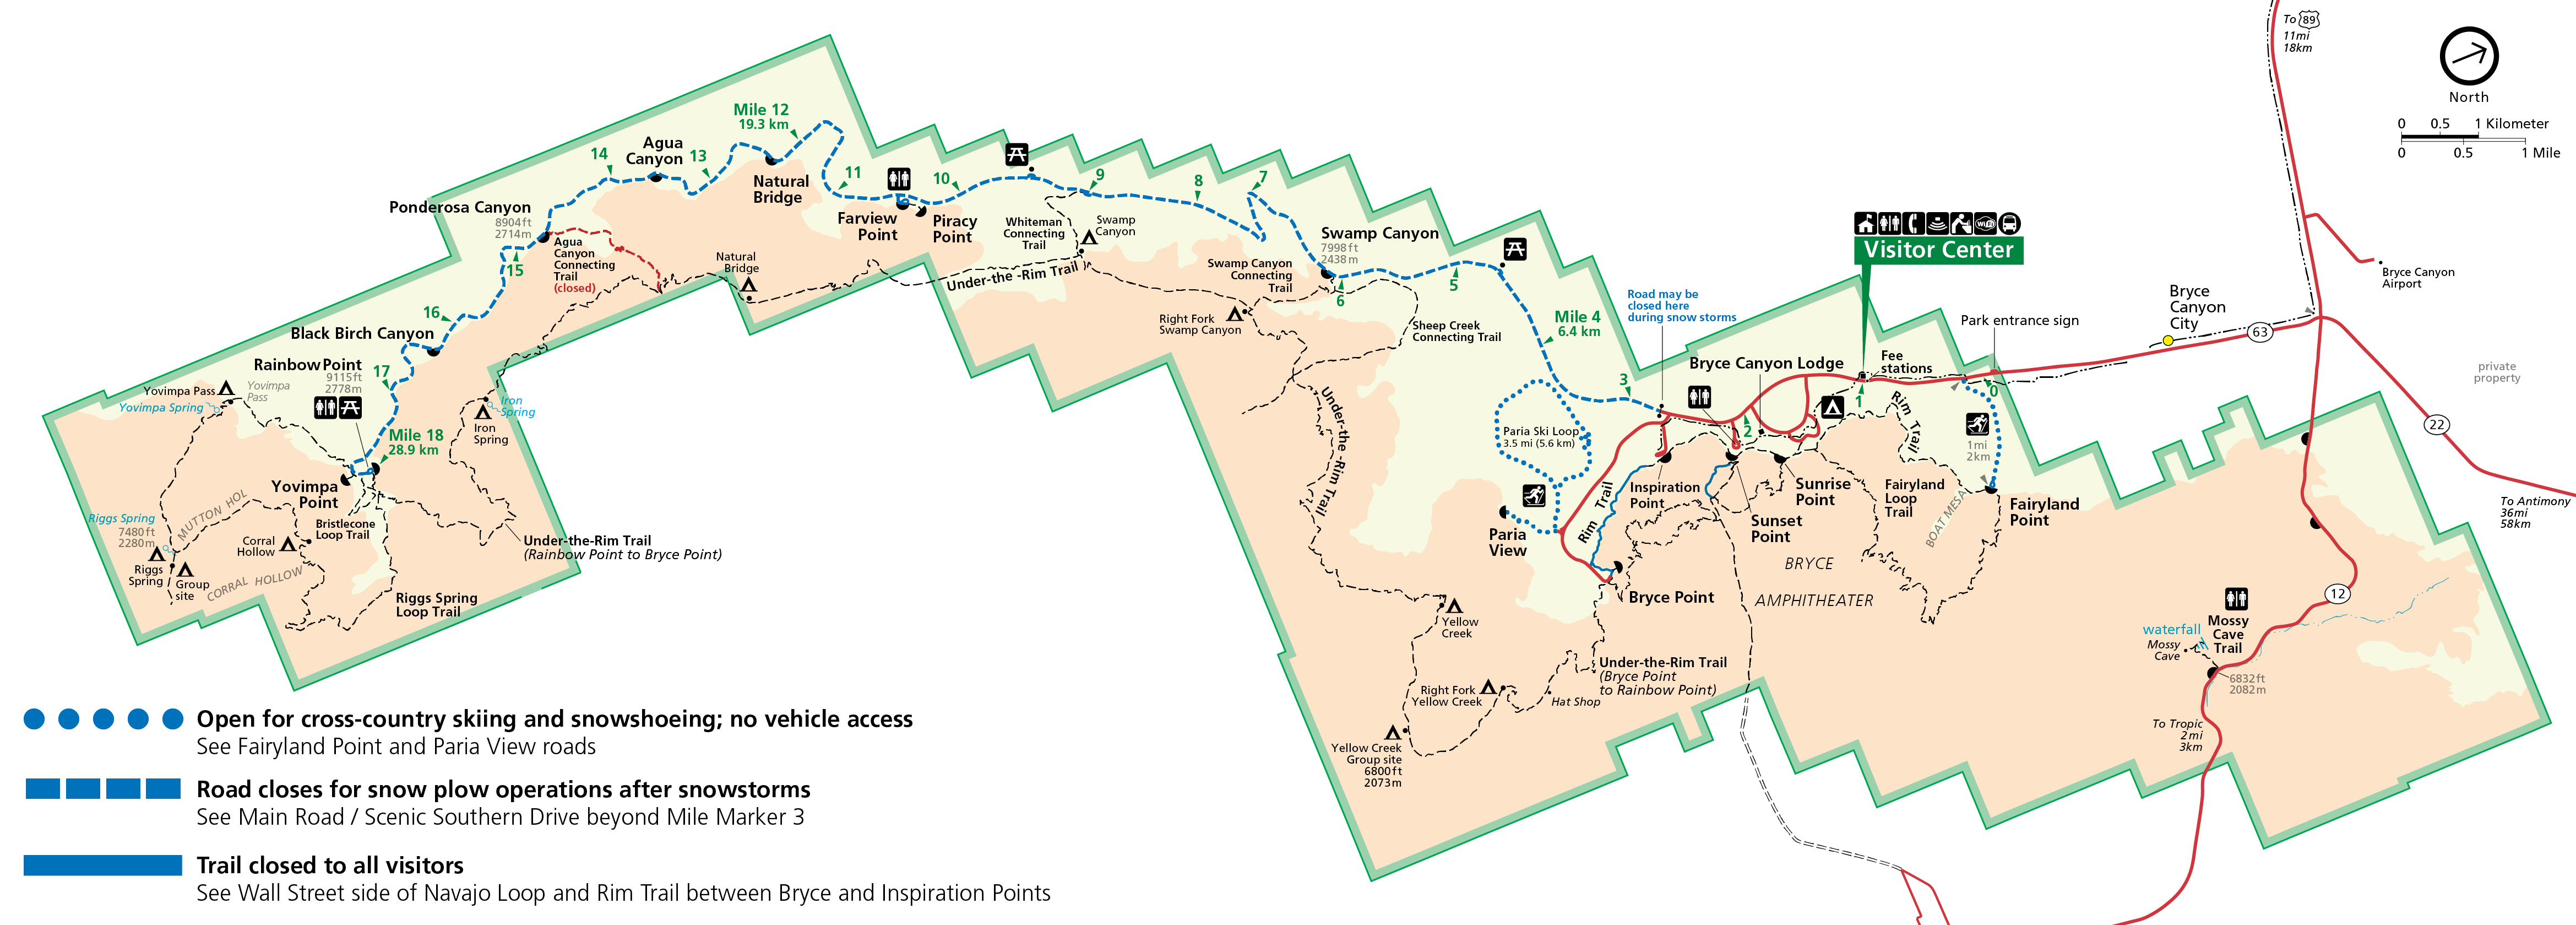 Map of the park depicting areas that are open or closed to visitor use in winter